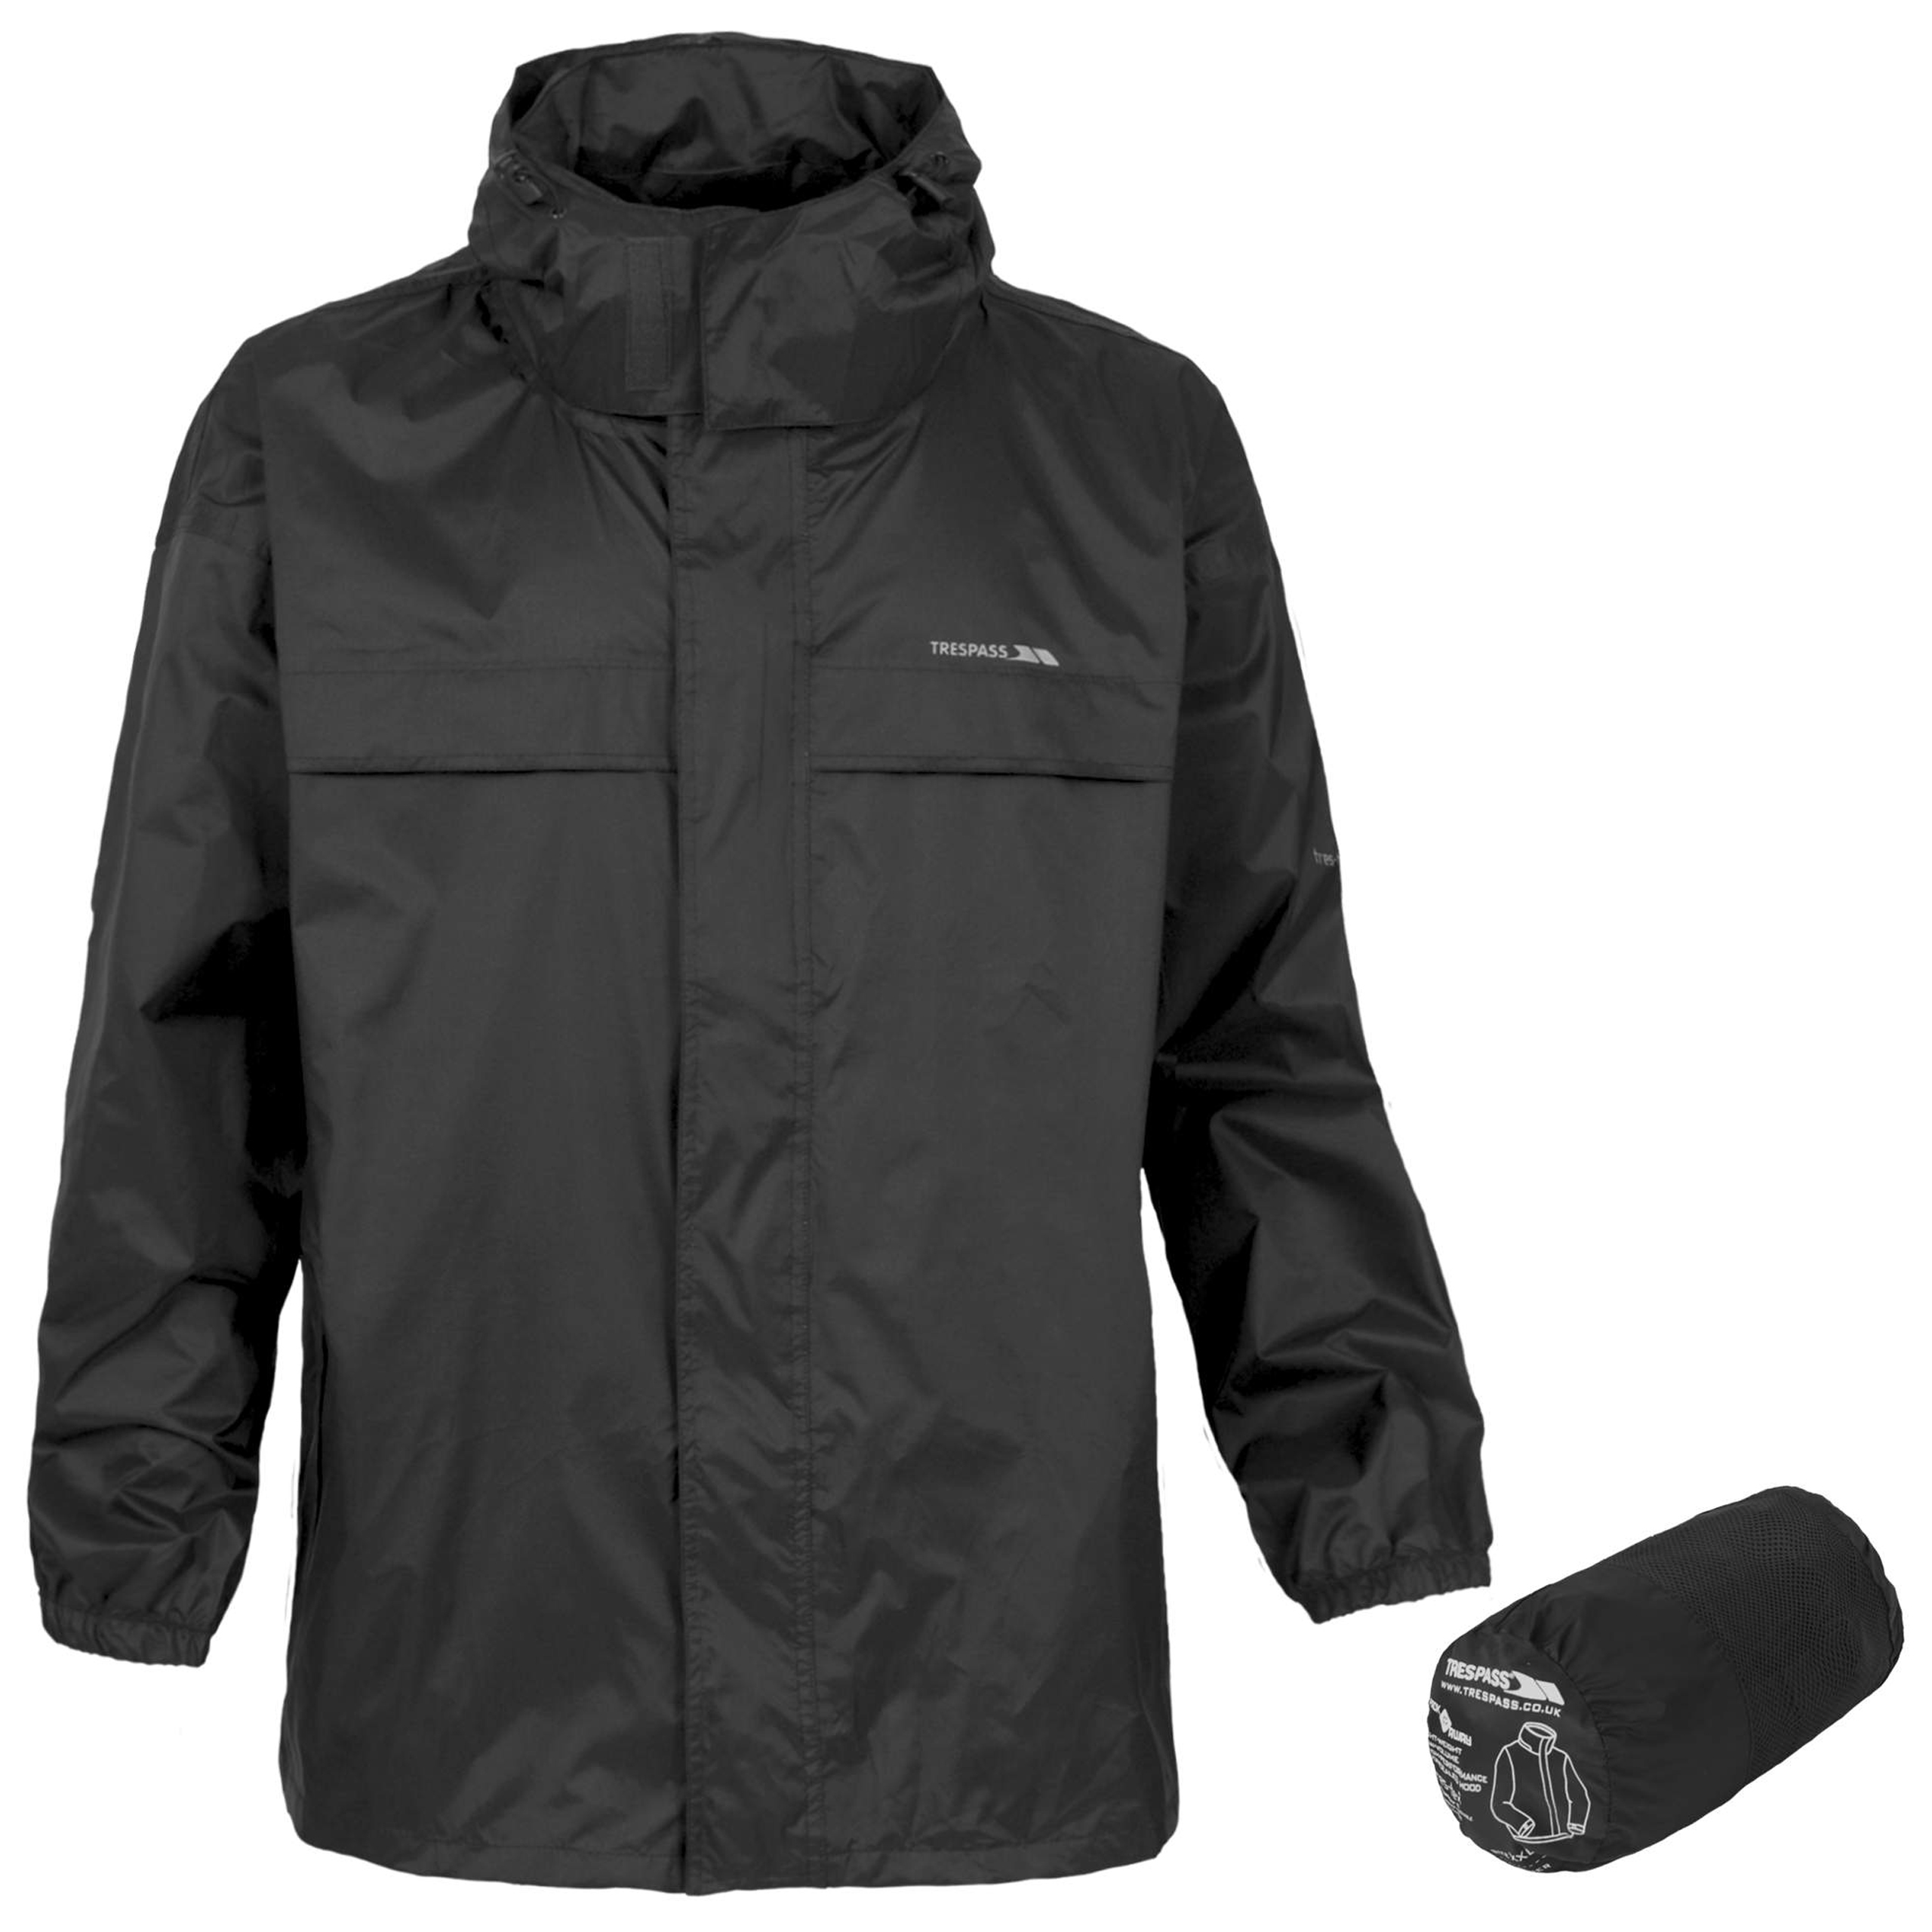 Trespass Packa Adults Packaway Raincoat Lightweight Waterproof Men ...